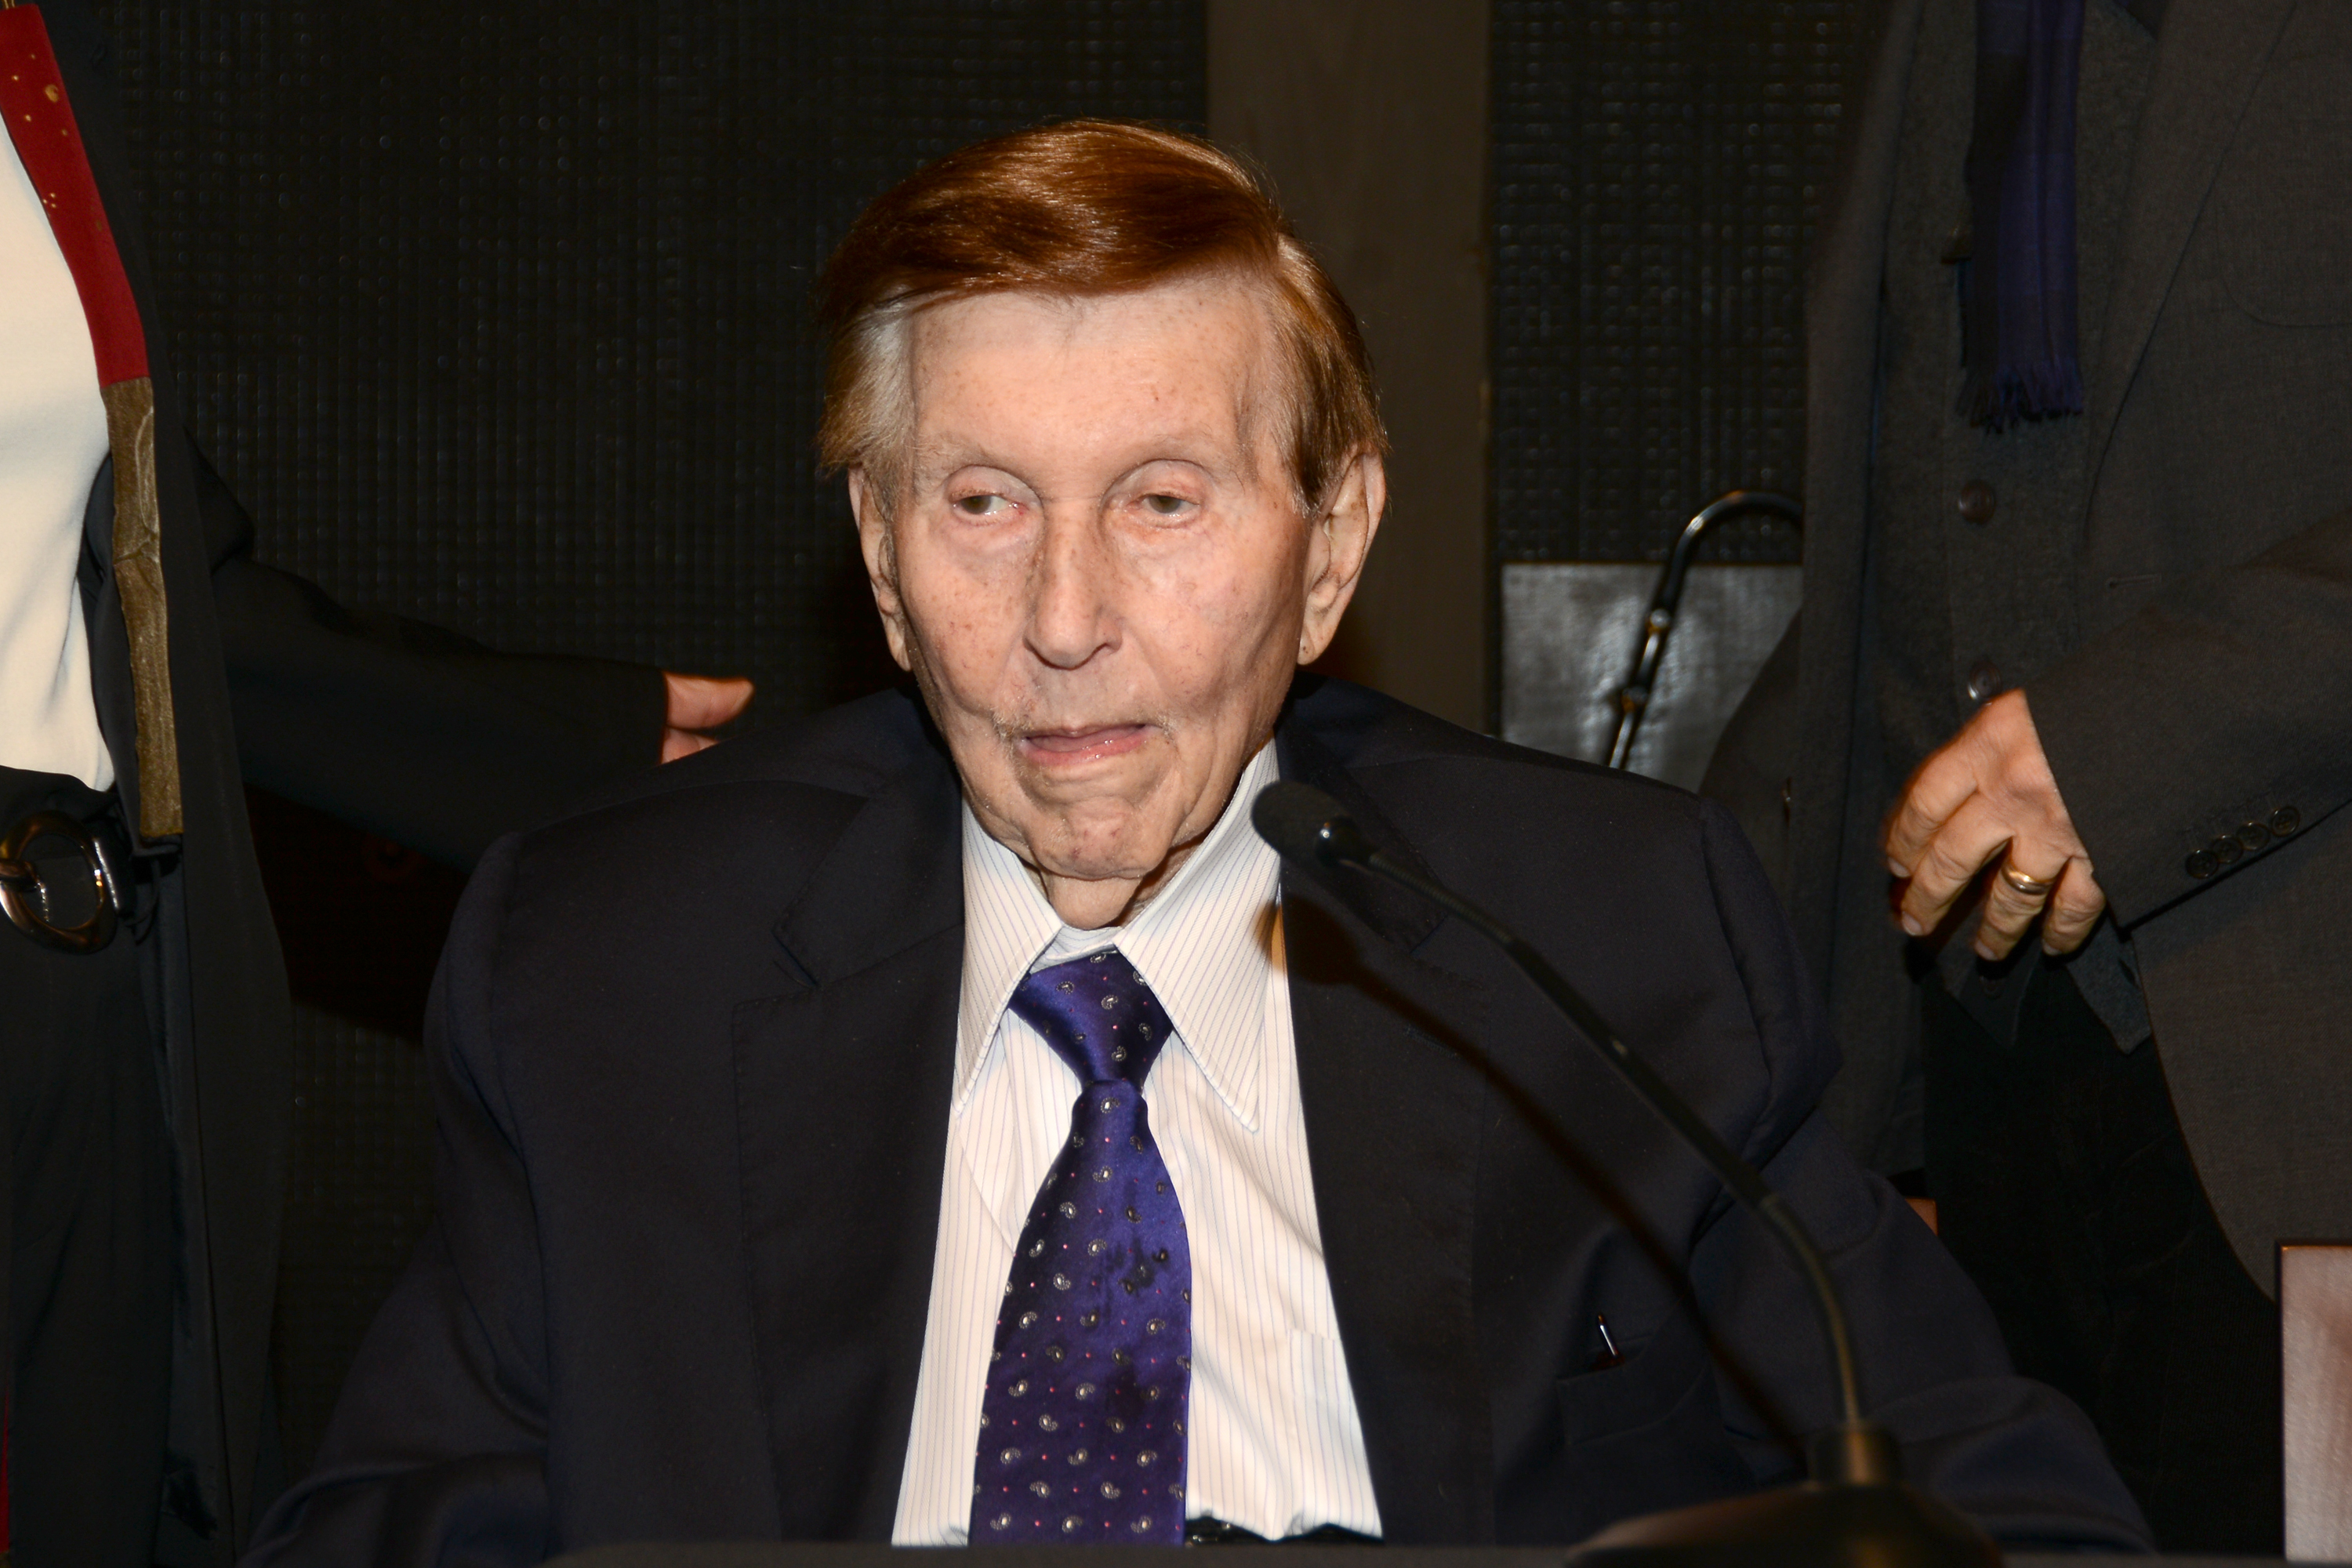 Dedication Of The Newly Completed Sumner M. Redstone Production Building On The USC School Of Cinematic Arts Campus